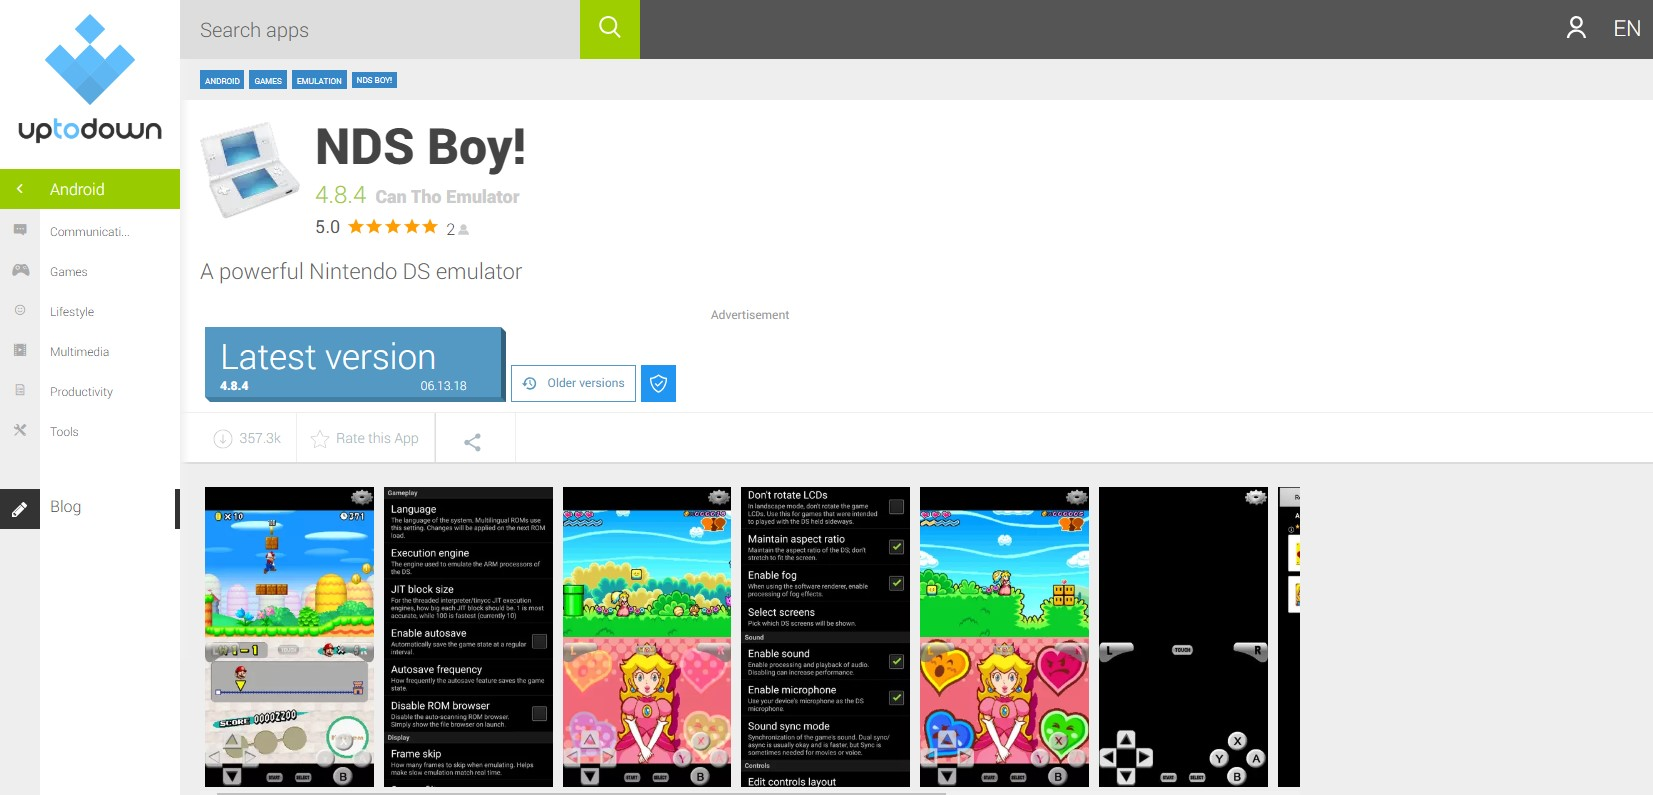 NDS Boy! Nintendo 3DS Emulator